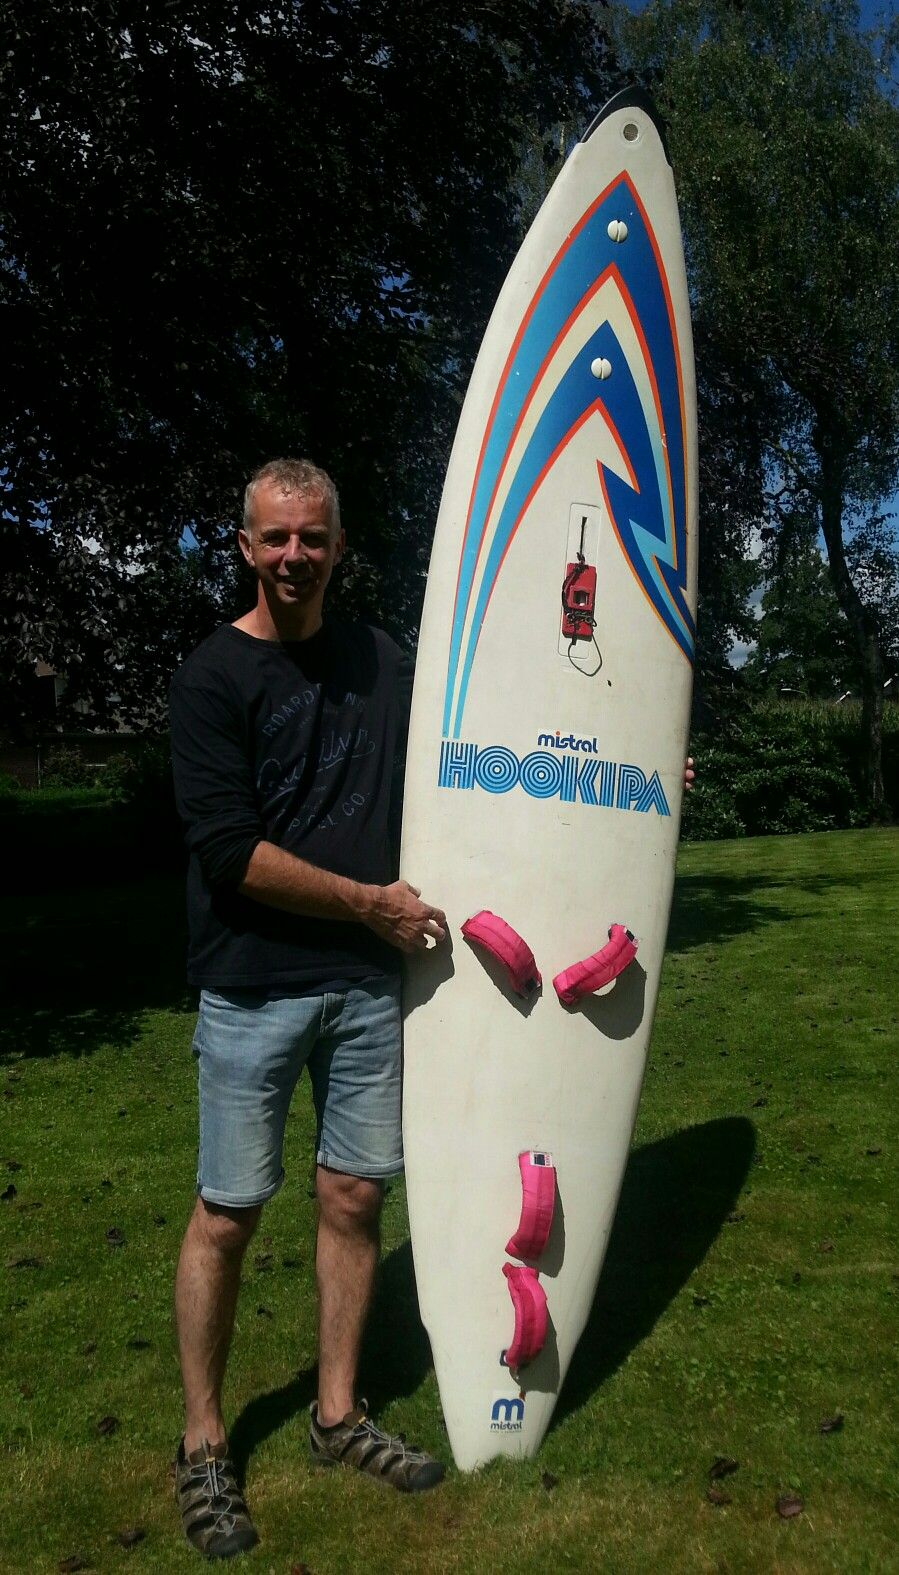 Mistral Hookipa Planche A Voile